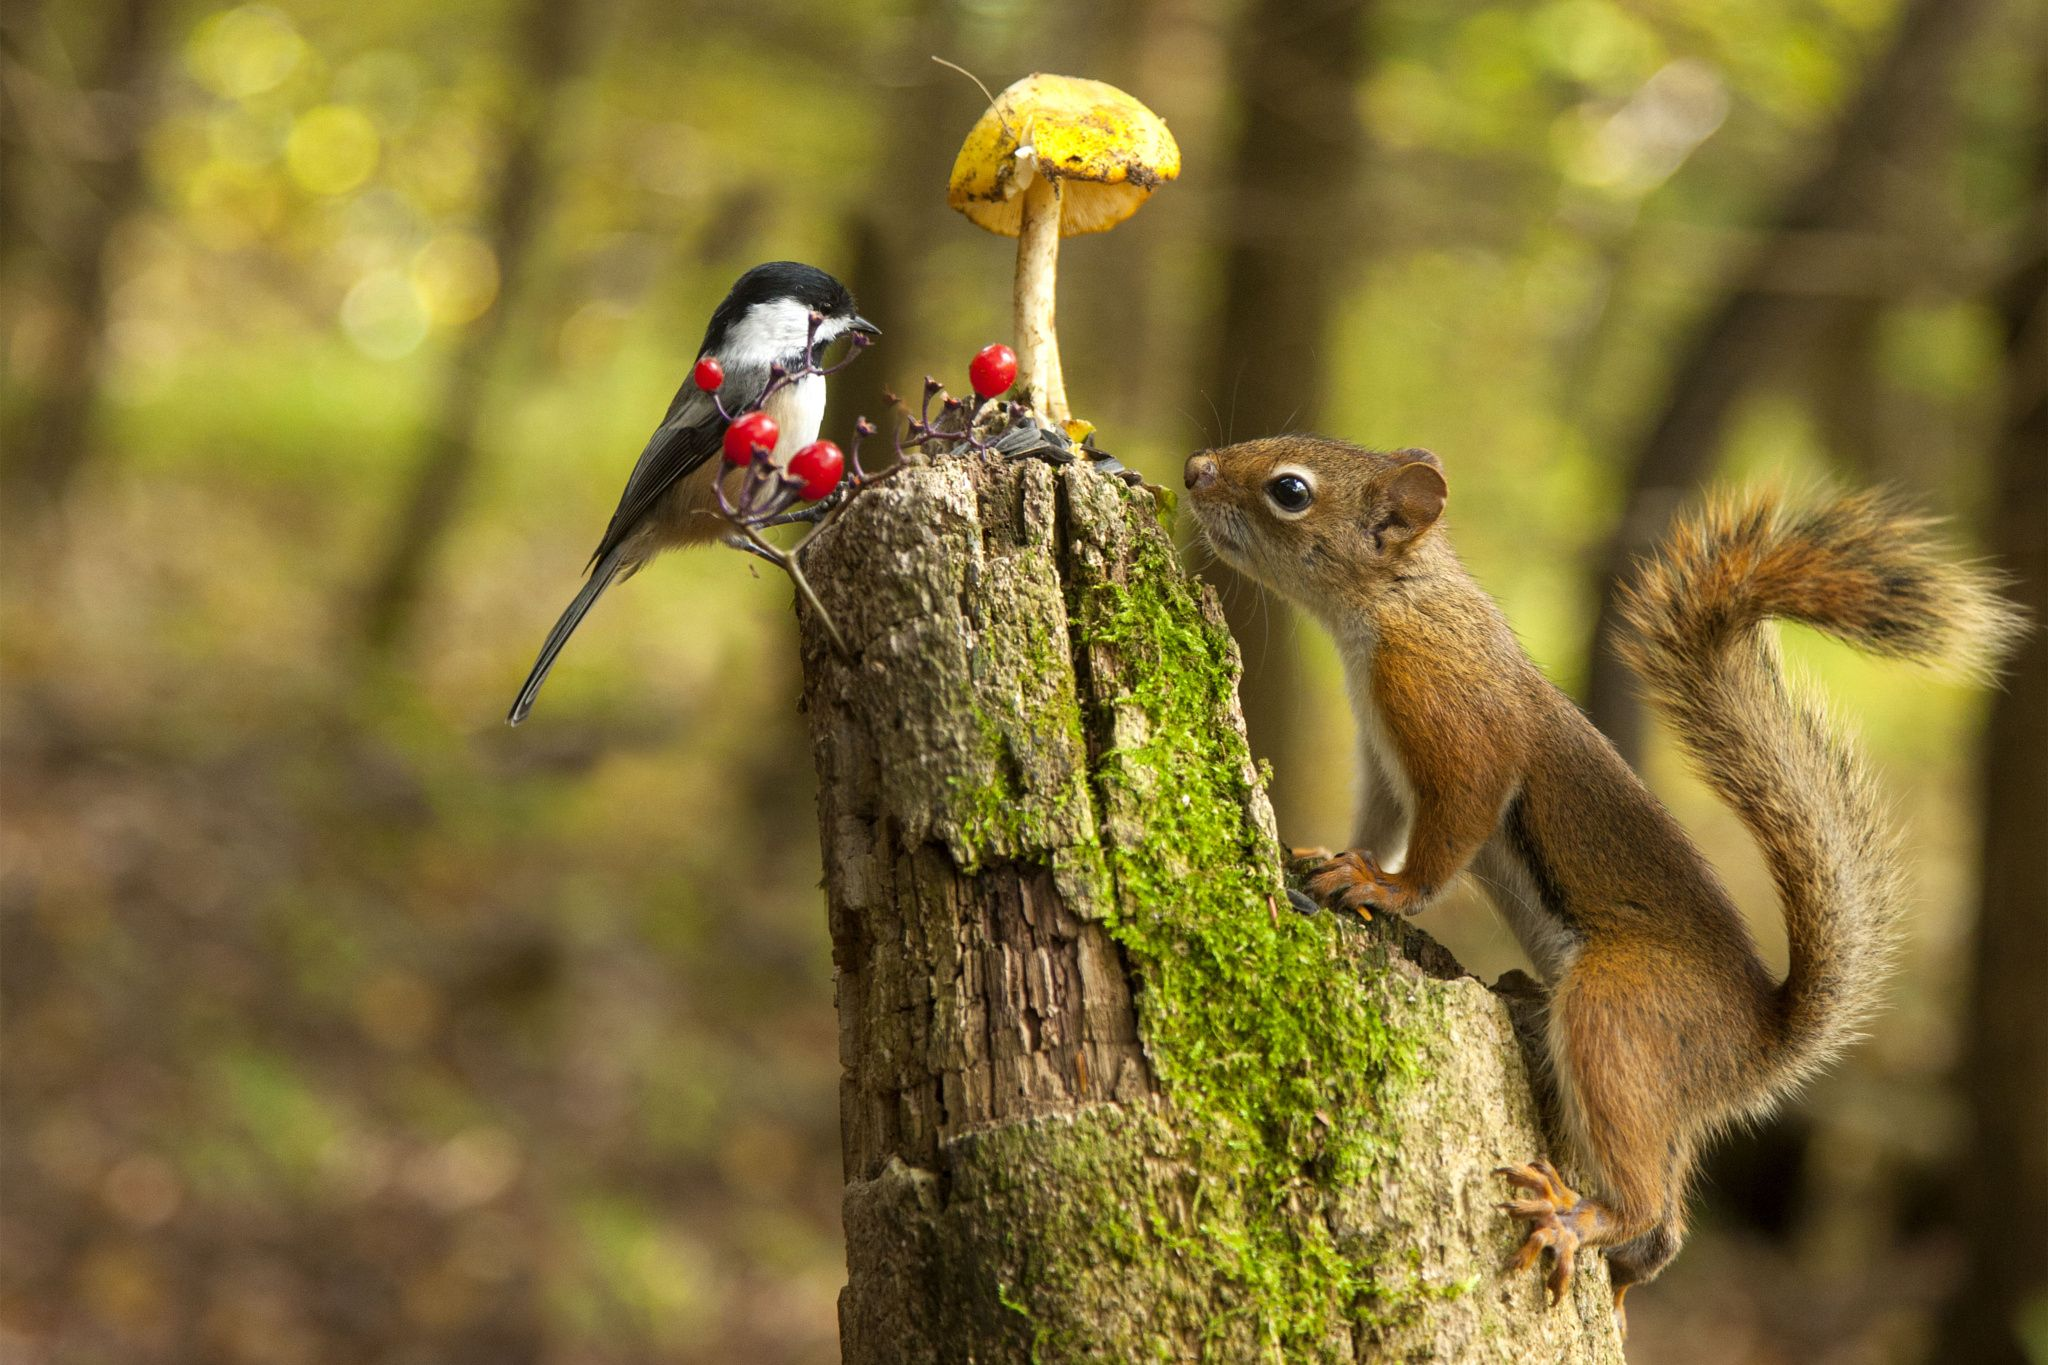 The bird the mushroom and the squirrel - null